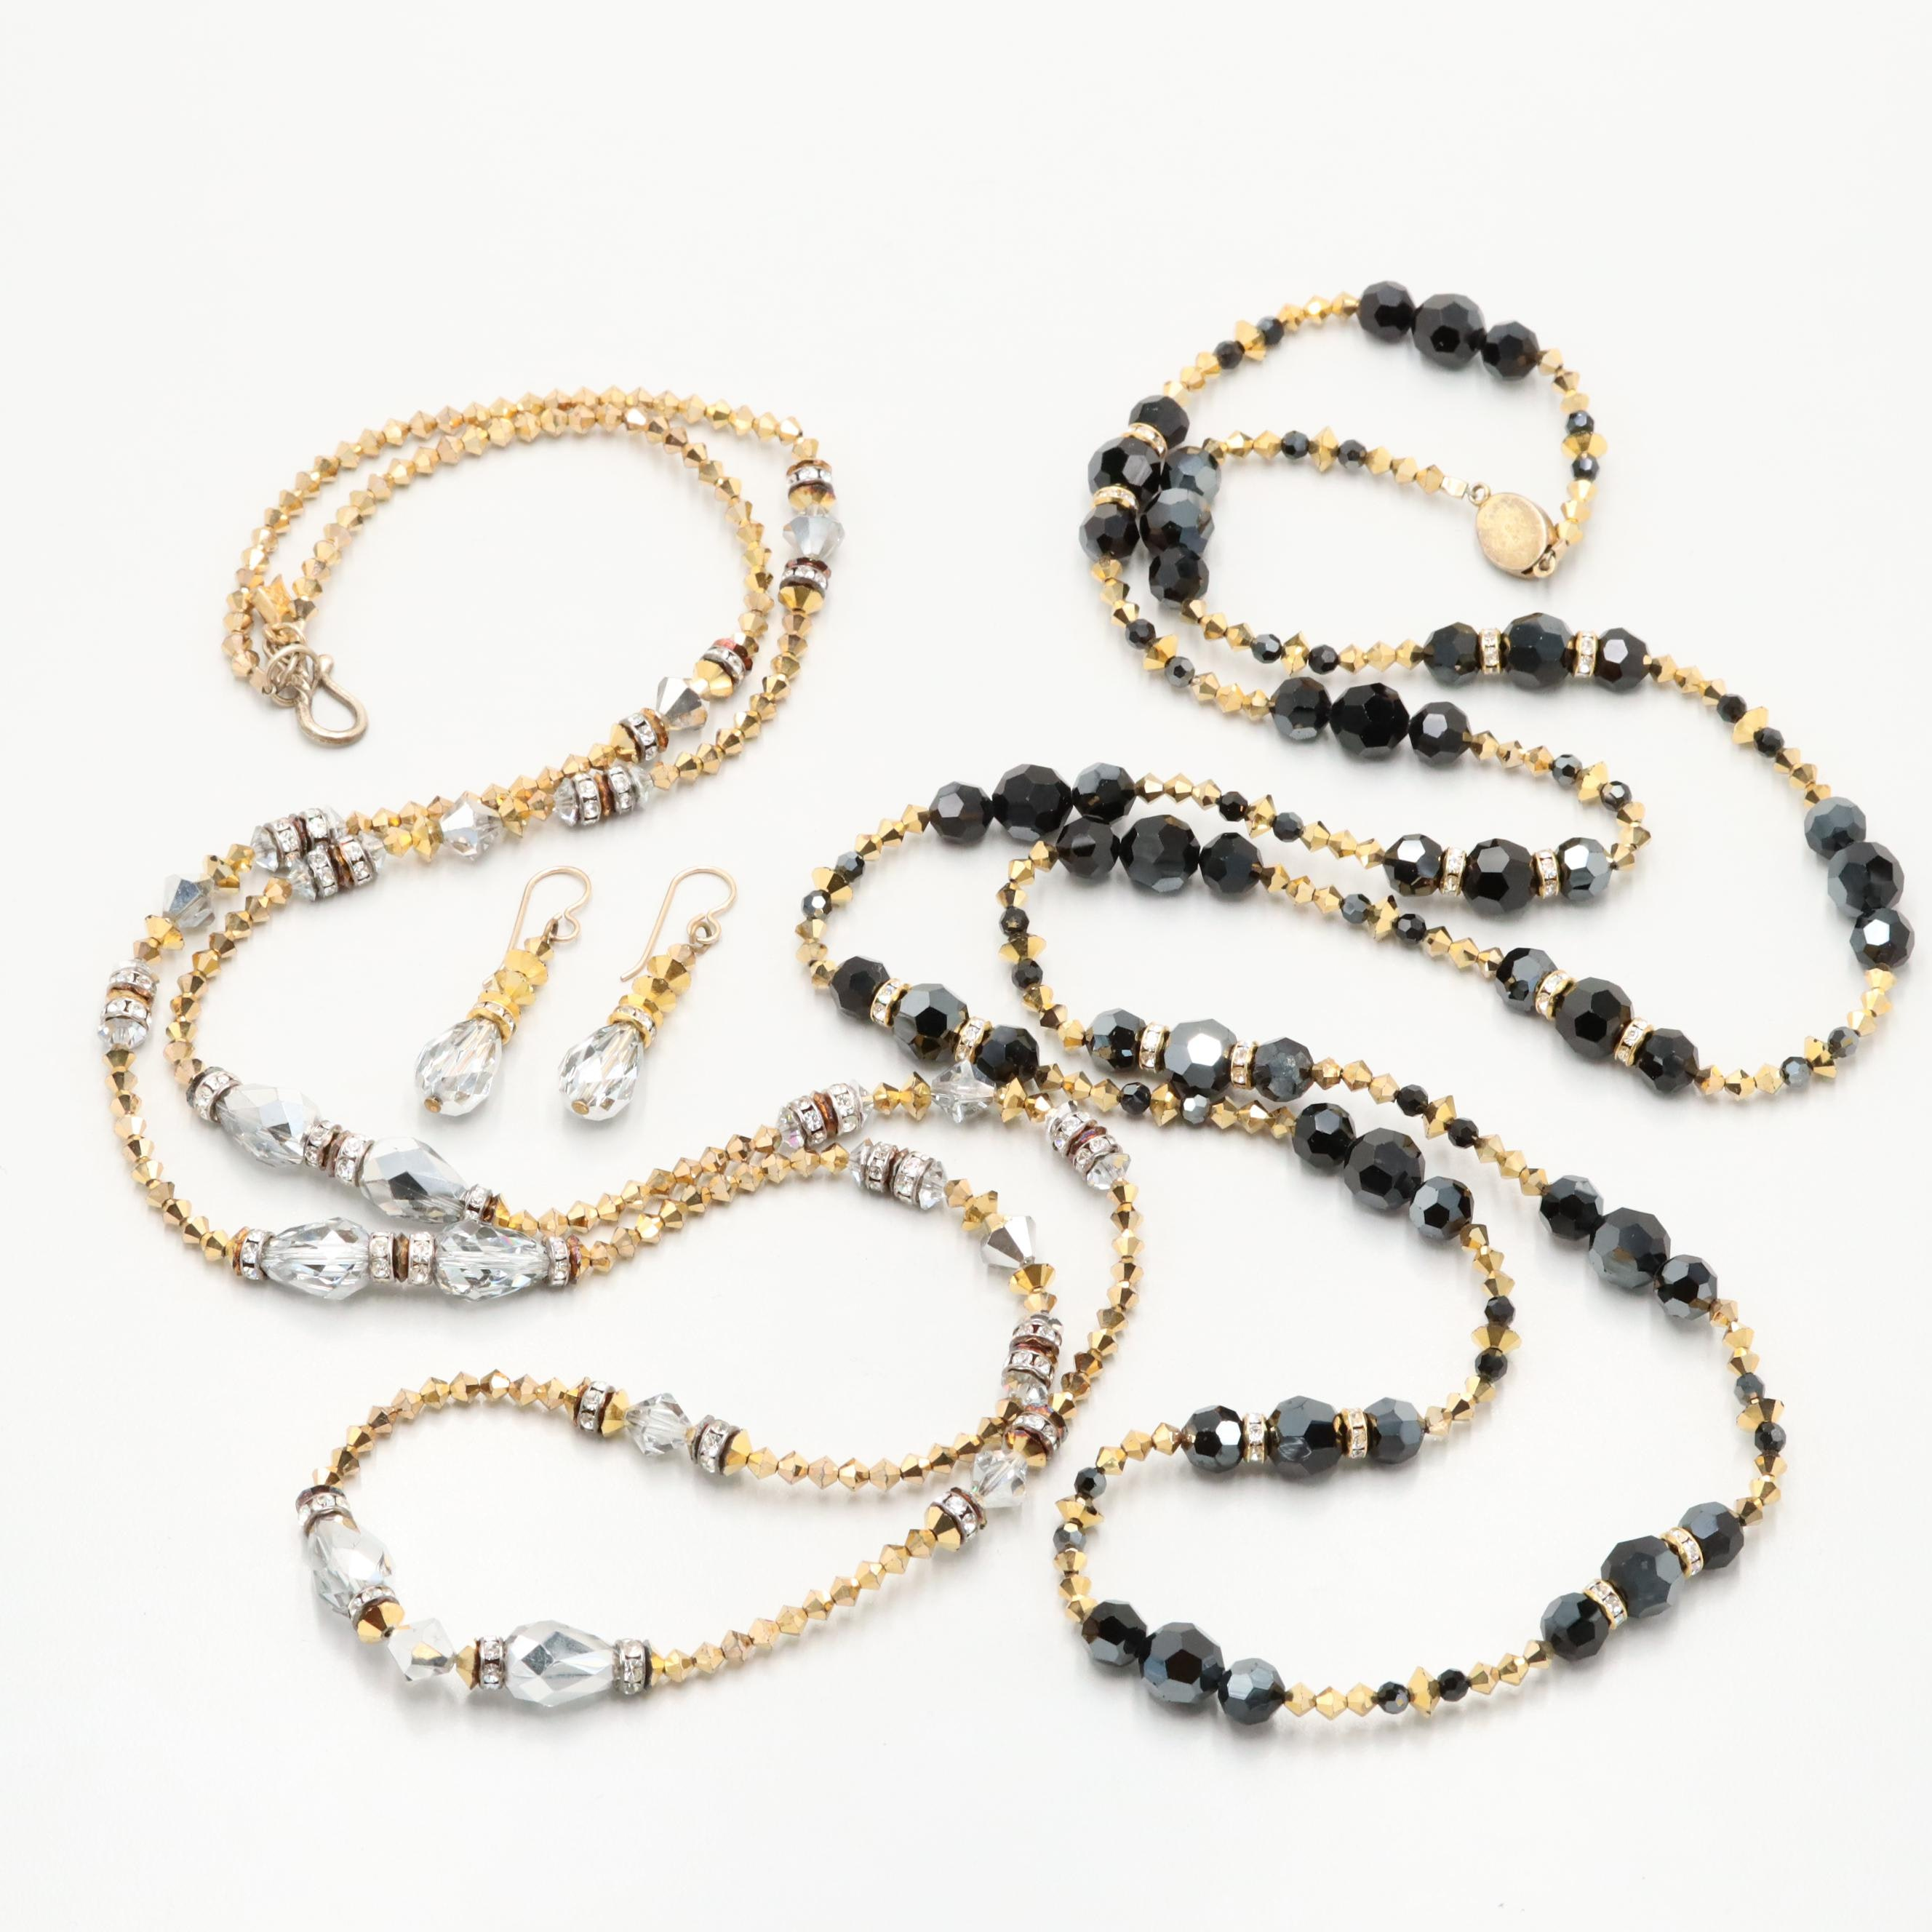 Glass and Rhinestone Beaded Necklaces and Earrings Including 800 and 900 Silver